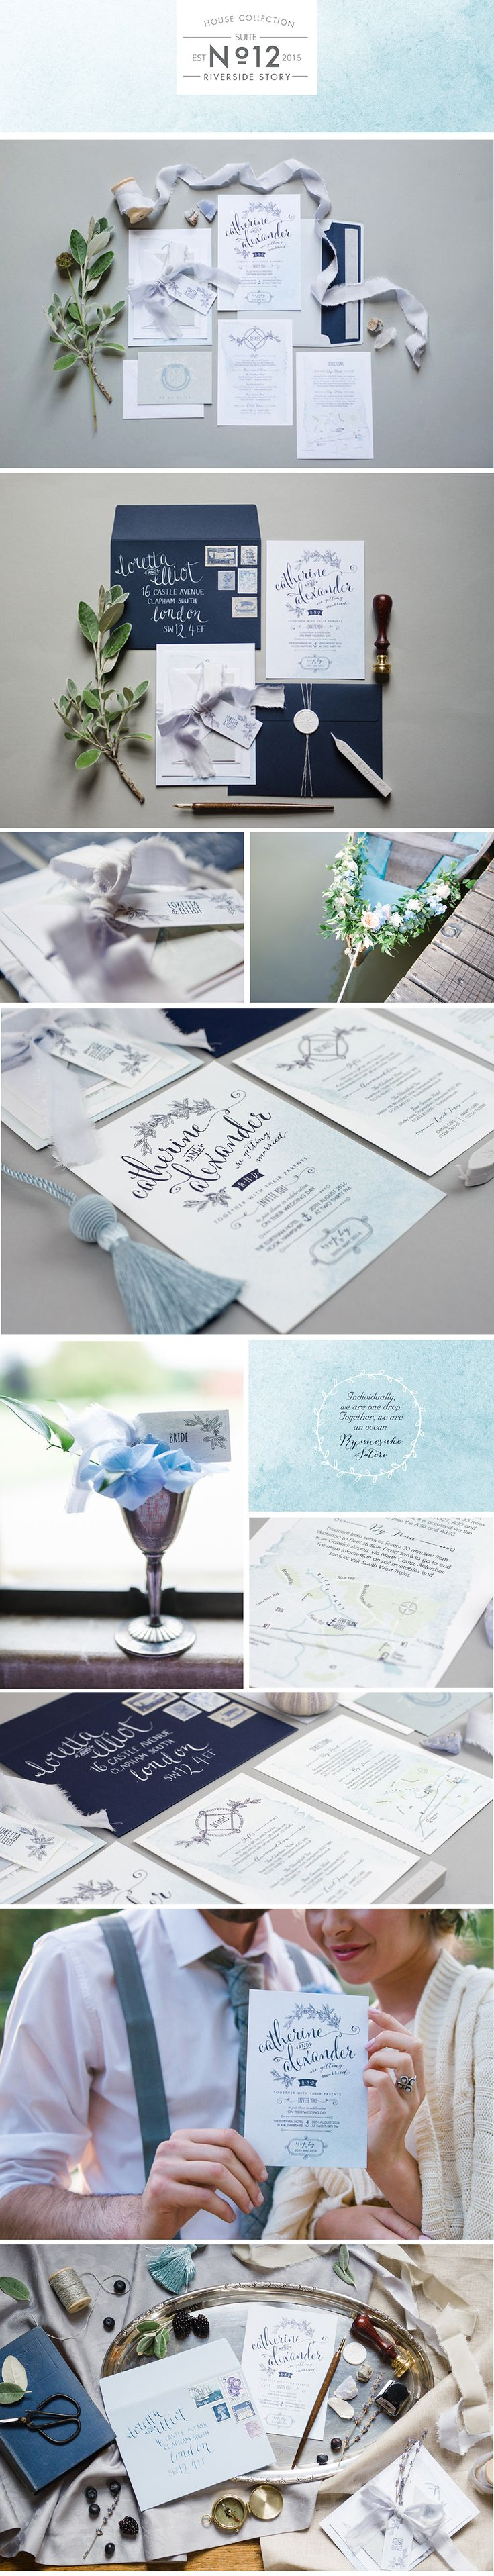 Paperknots Riverside Story Wedding Stationery (images by Hannah McClune) http://www.paperknots.co.uk/portfolio/riverside-story/